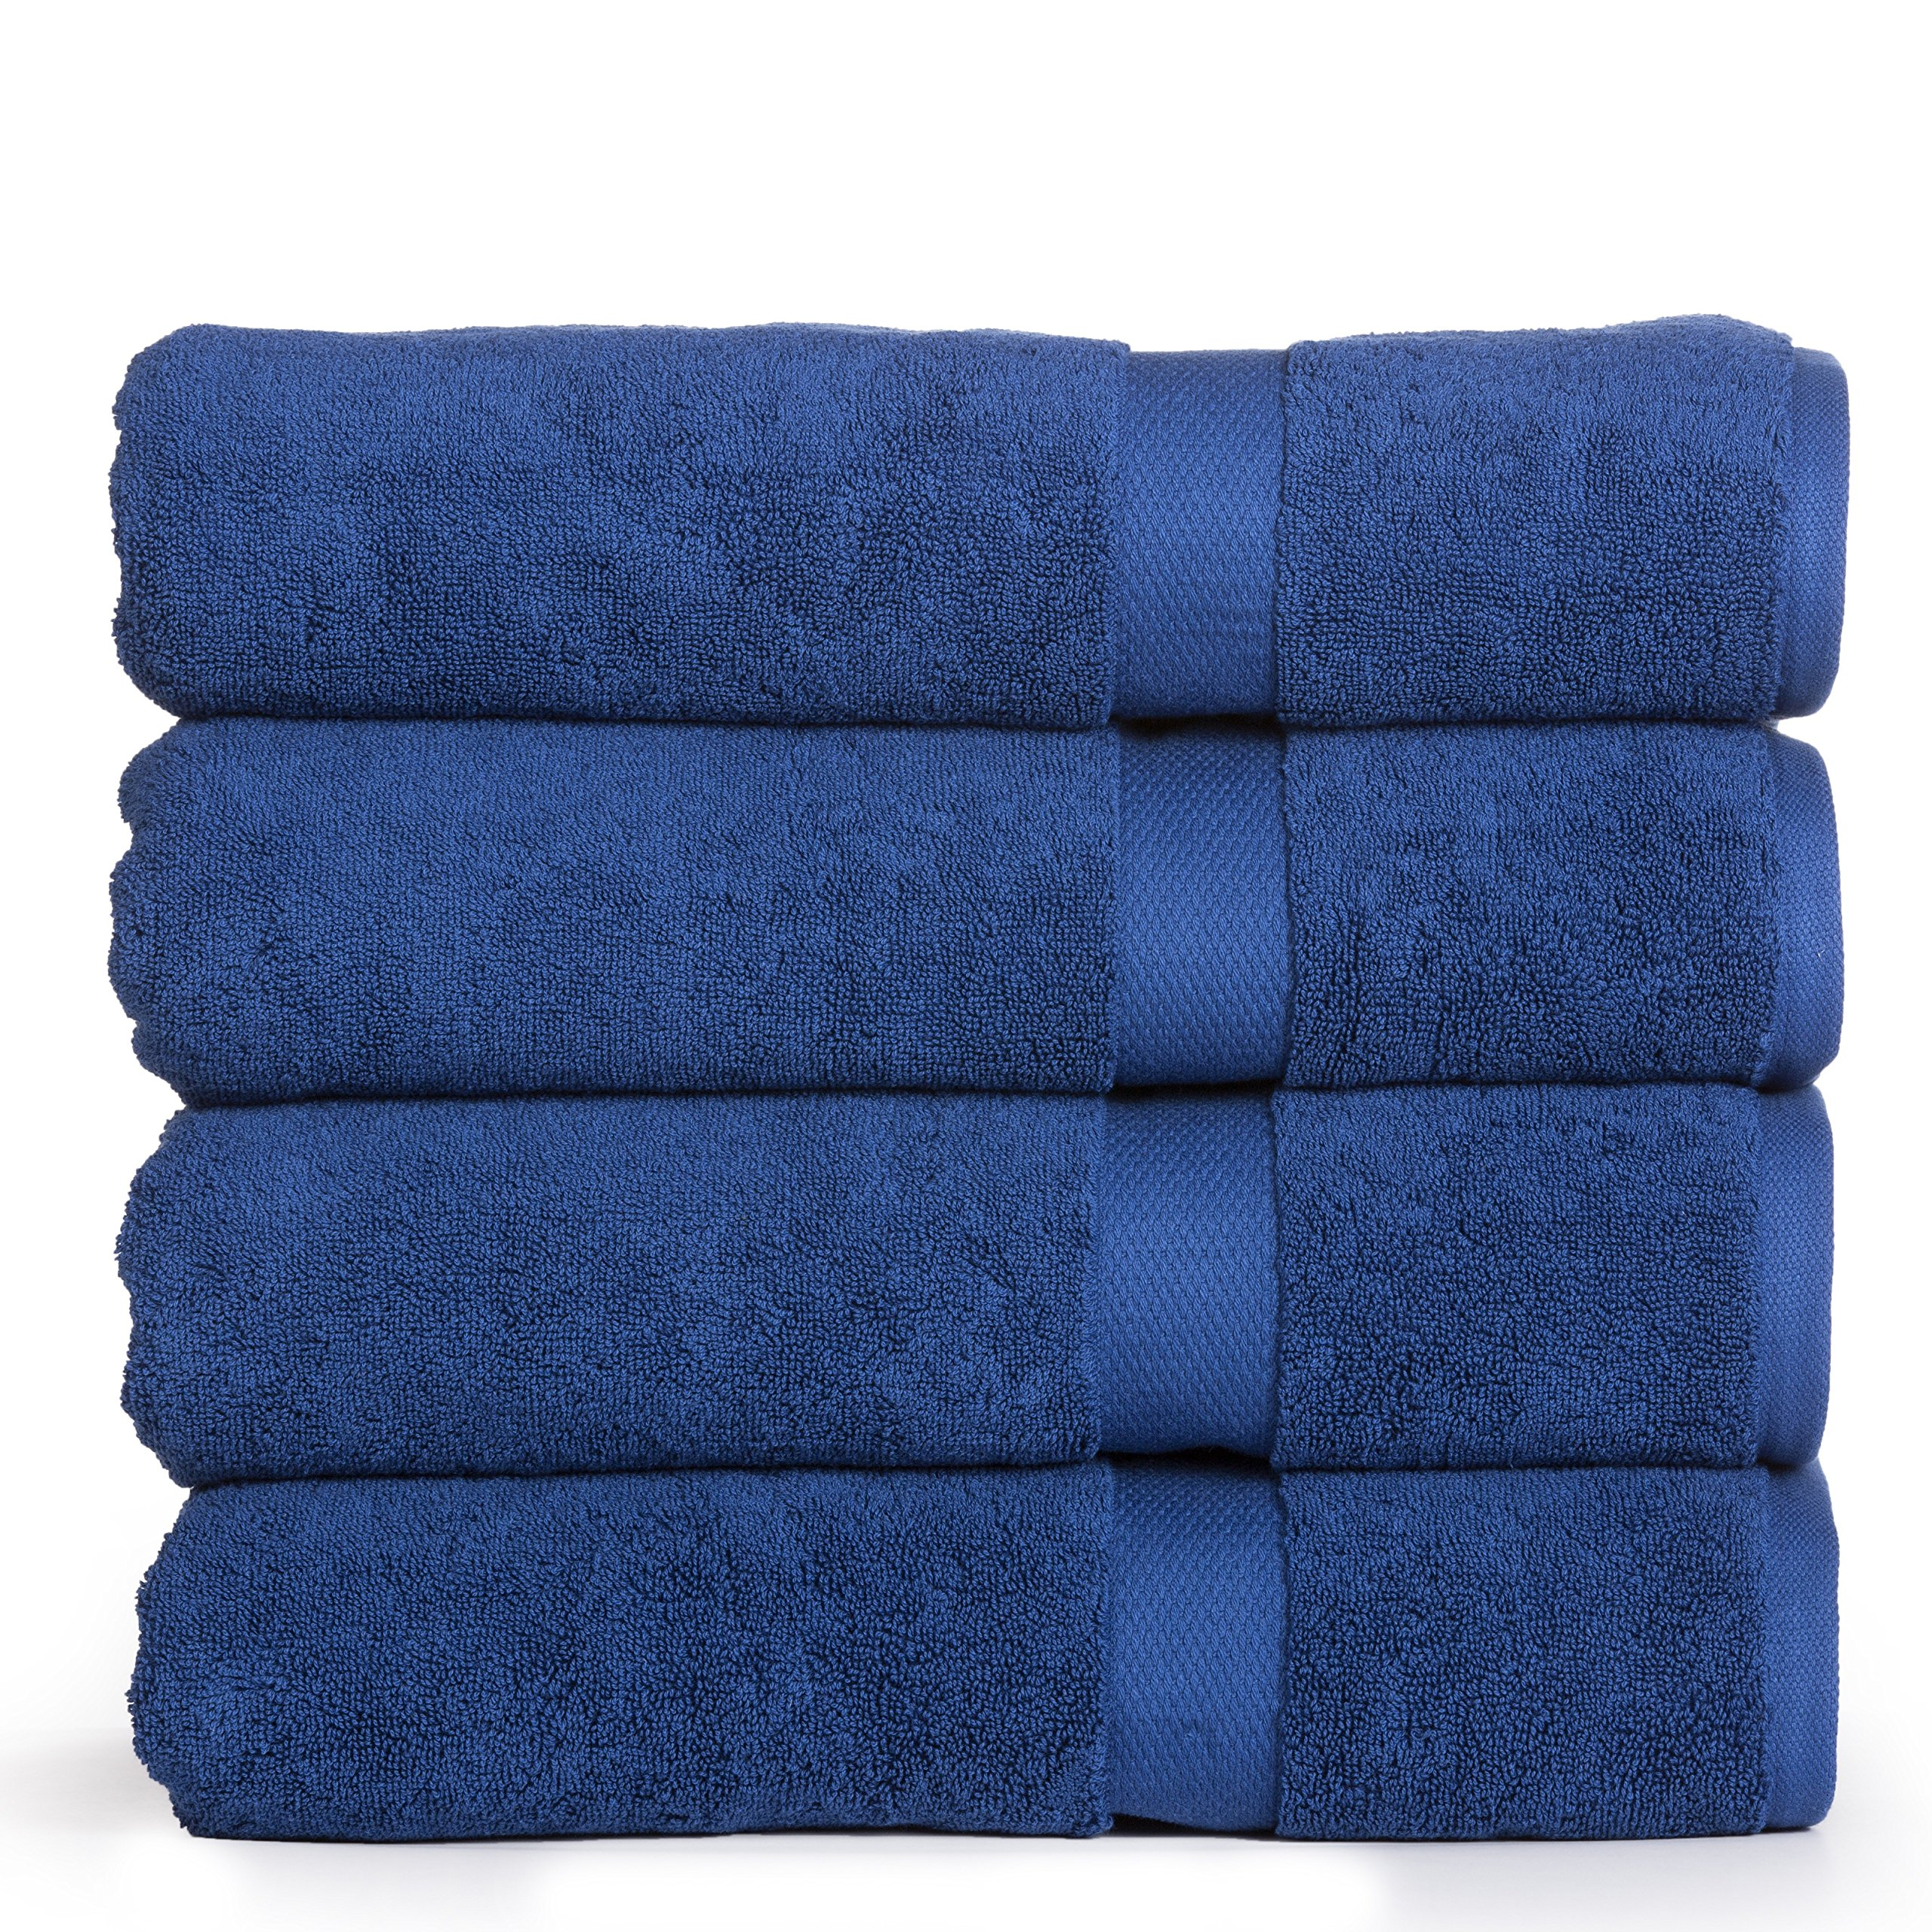 Madhvi Collection 800 GSM Premium Combed Cotton Extra Large 30 x 60 Inch Bath Towels 4 Pack, Oversized and Heavy Bath Towel Set, Hotel and Spa Towels Set With Maximum Softness, High Absorbency (Navy) by Casa Platino (Image #7)